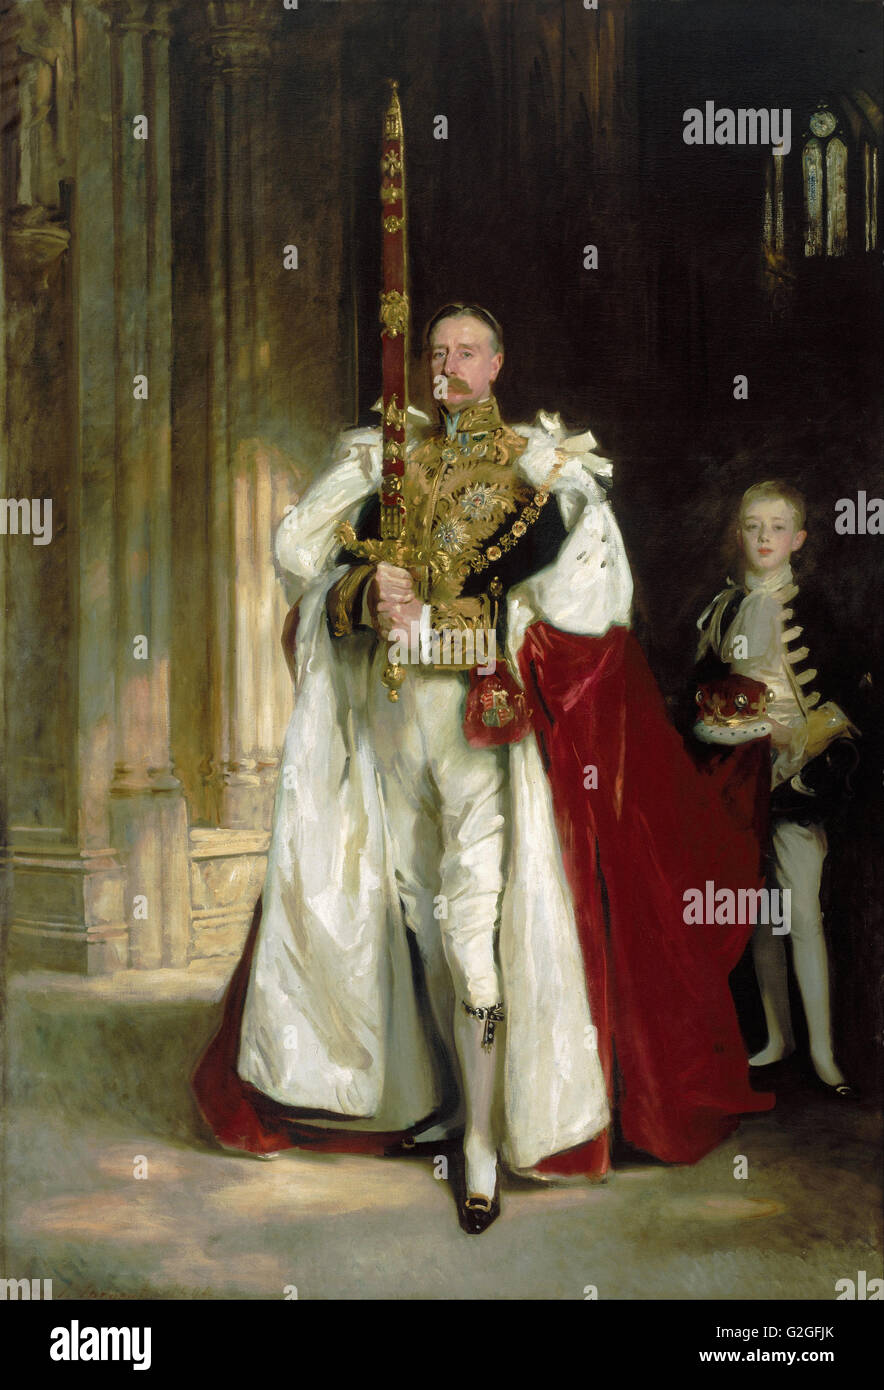 John Singer Sargent - Charles Stewart, Sixth Marquess of Londonderry, Carrying the Great Sword - Museum of Fine - Stock Image